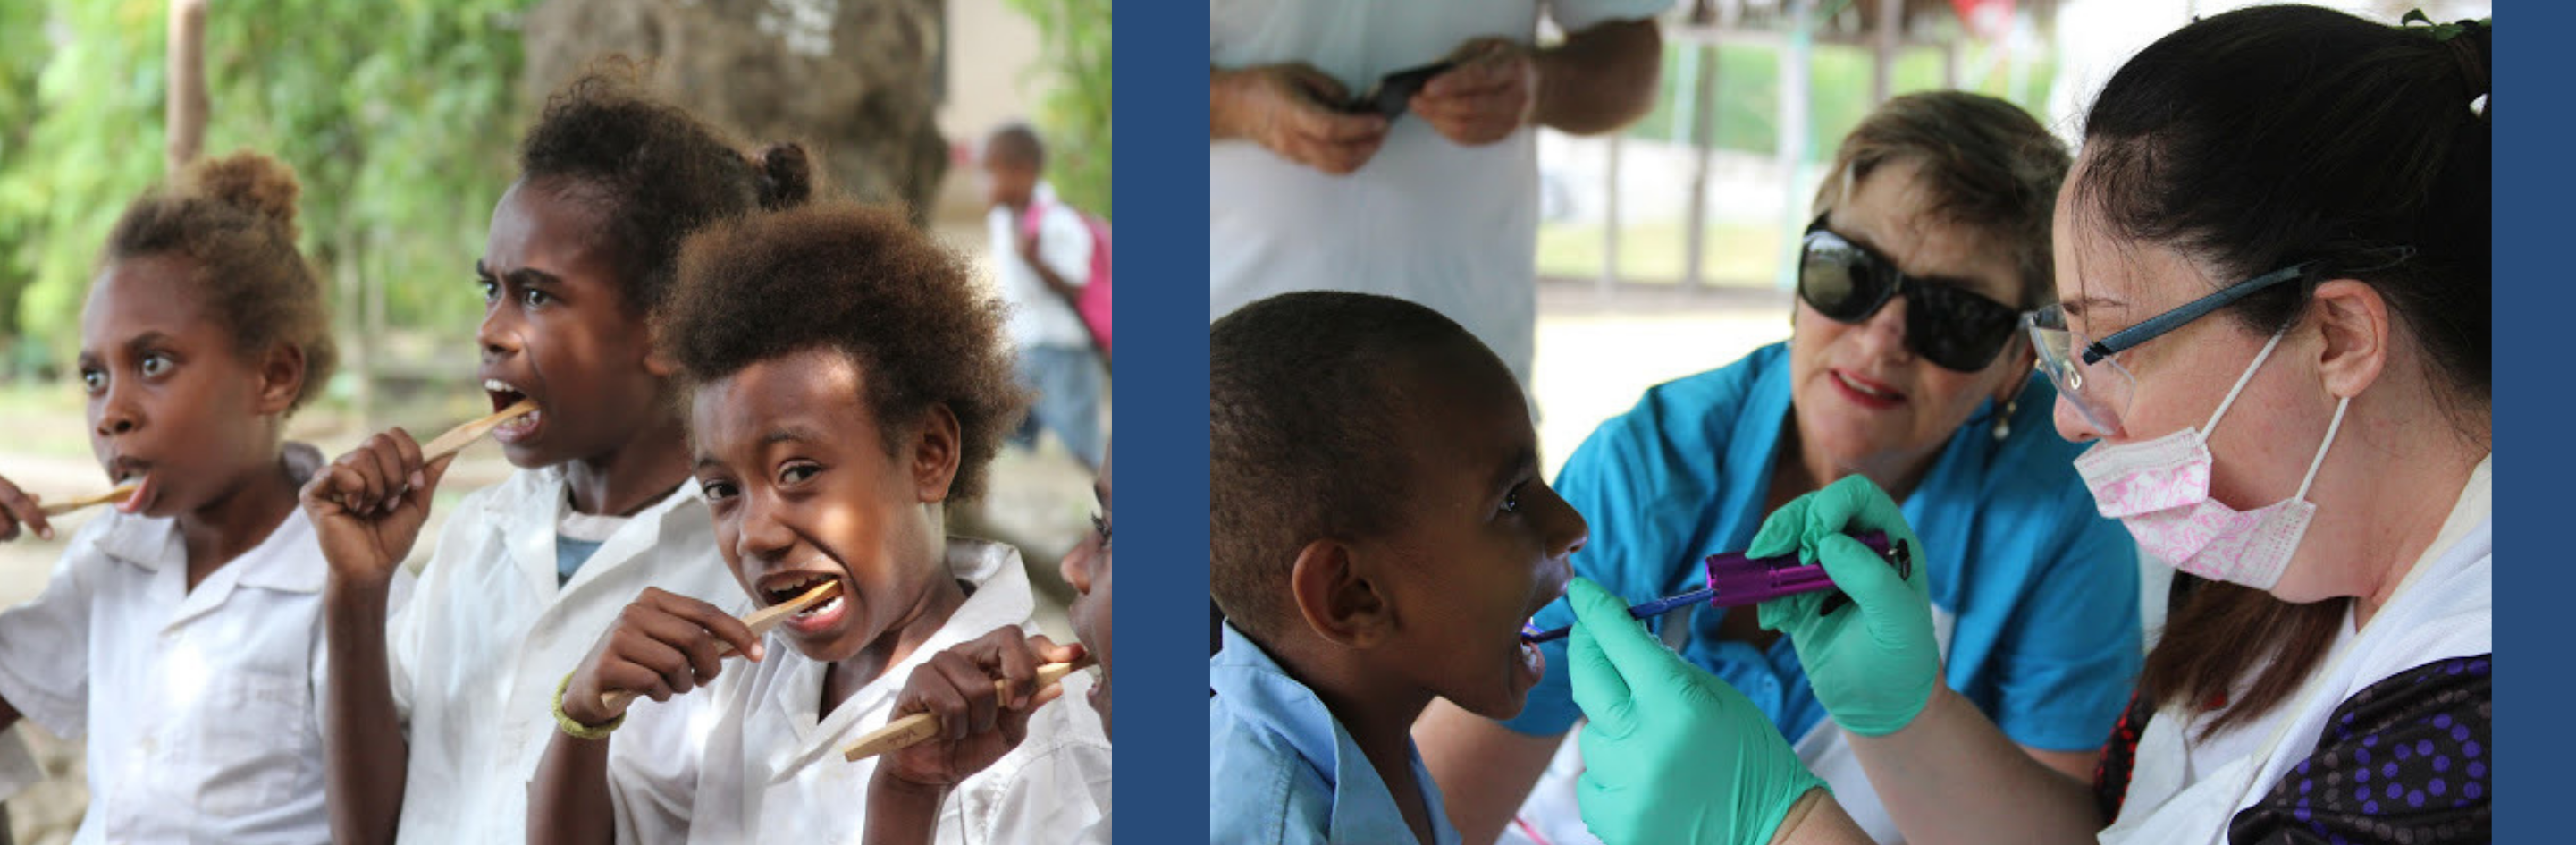 Dental volunteers provide children and teachers with toothbrushes, dental check-ups and emergency dental treatment.